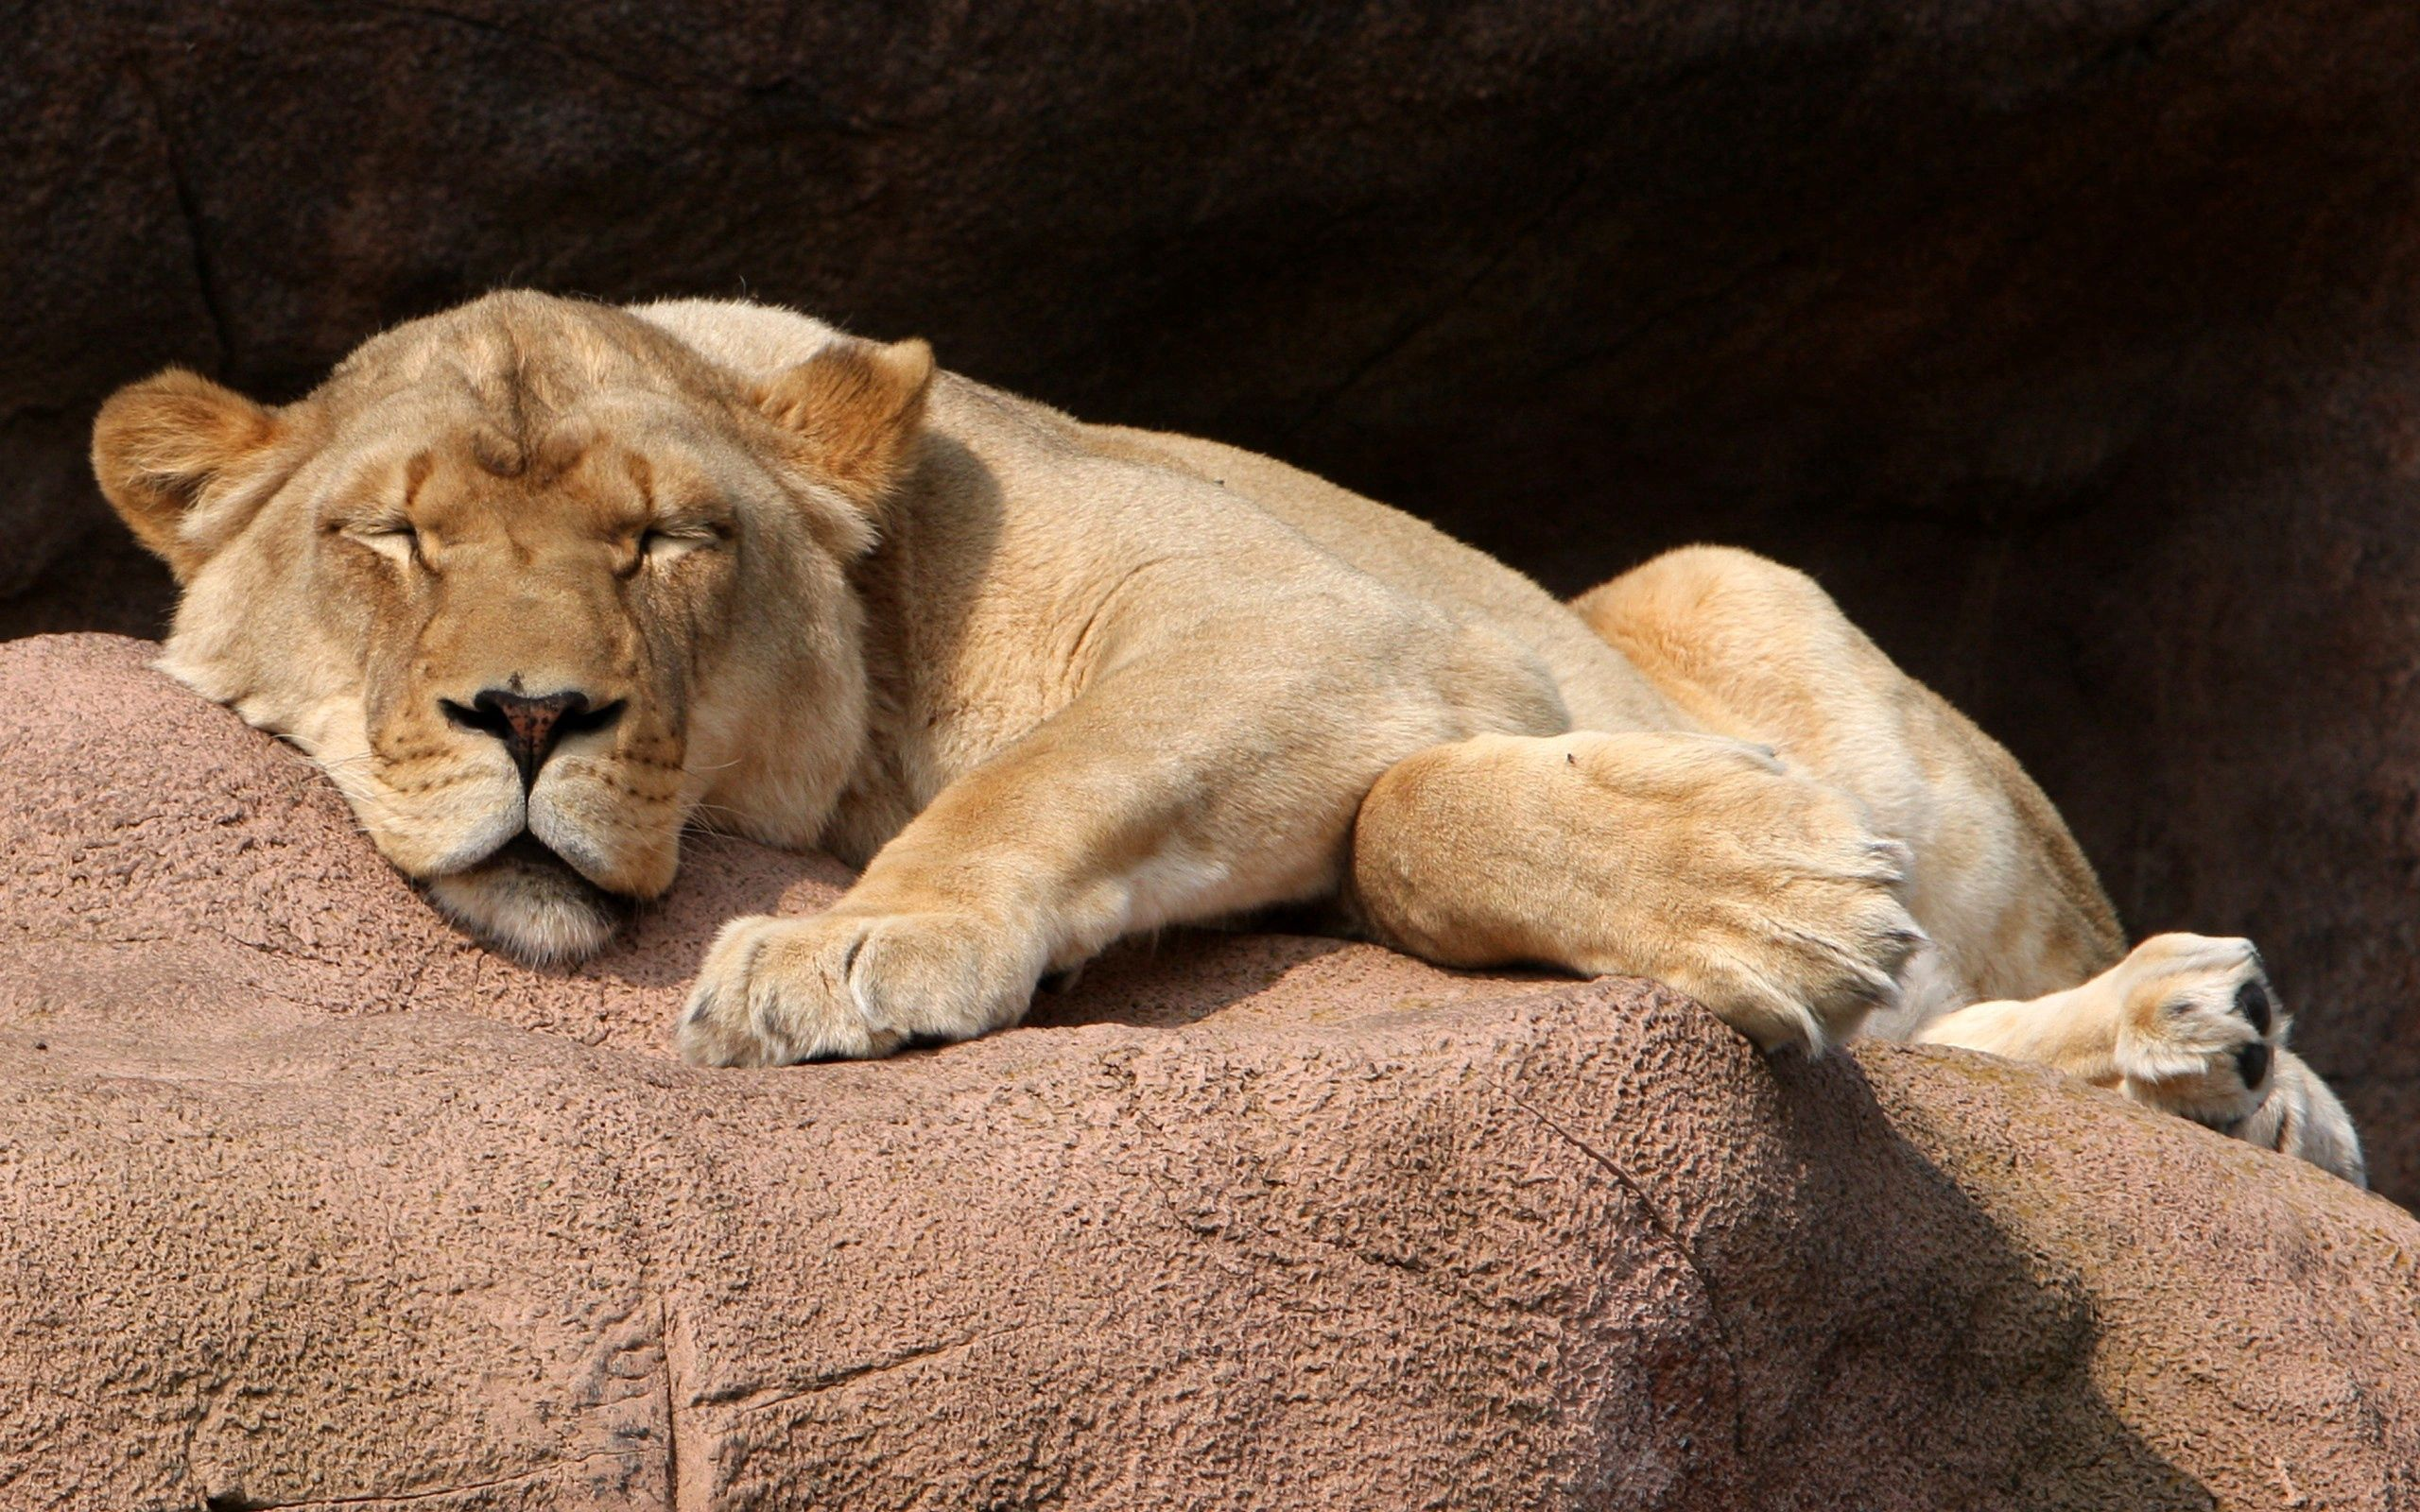 117664 download wallpaper Animals, Lioness, Rock, Stone, To Lie Down, Lie screensavers and pictures for free